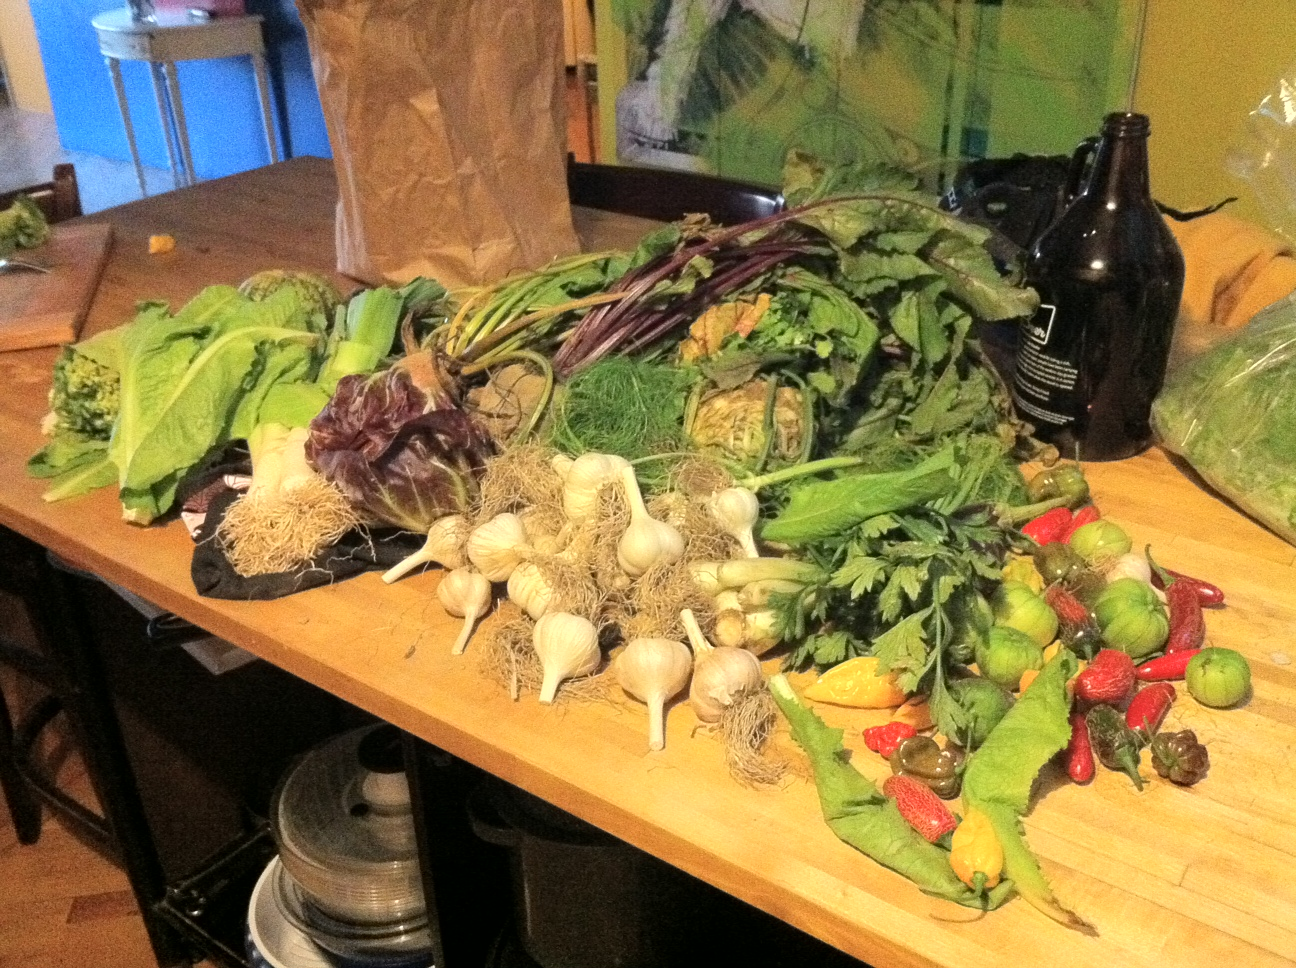 Garden vegetables on a wooden table.